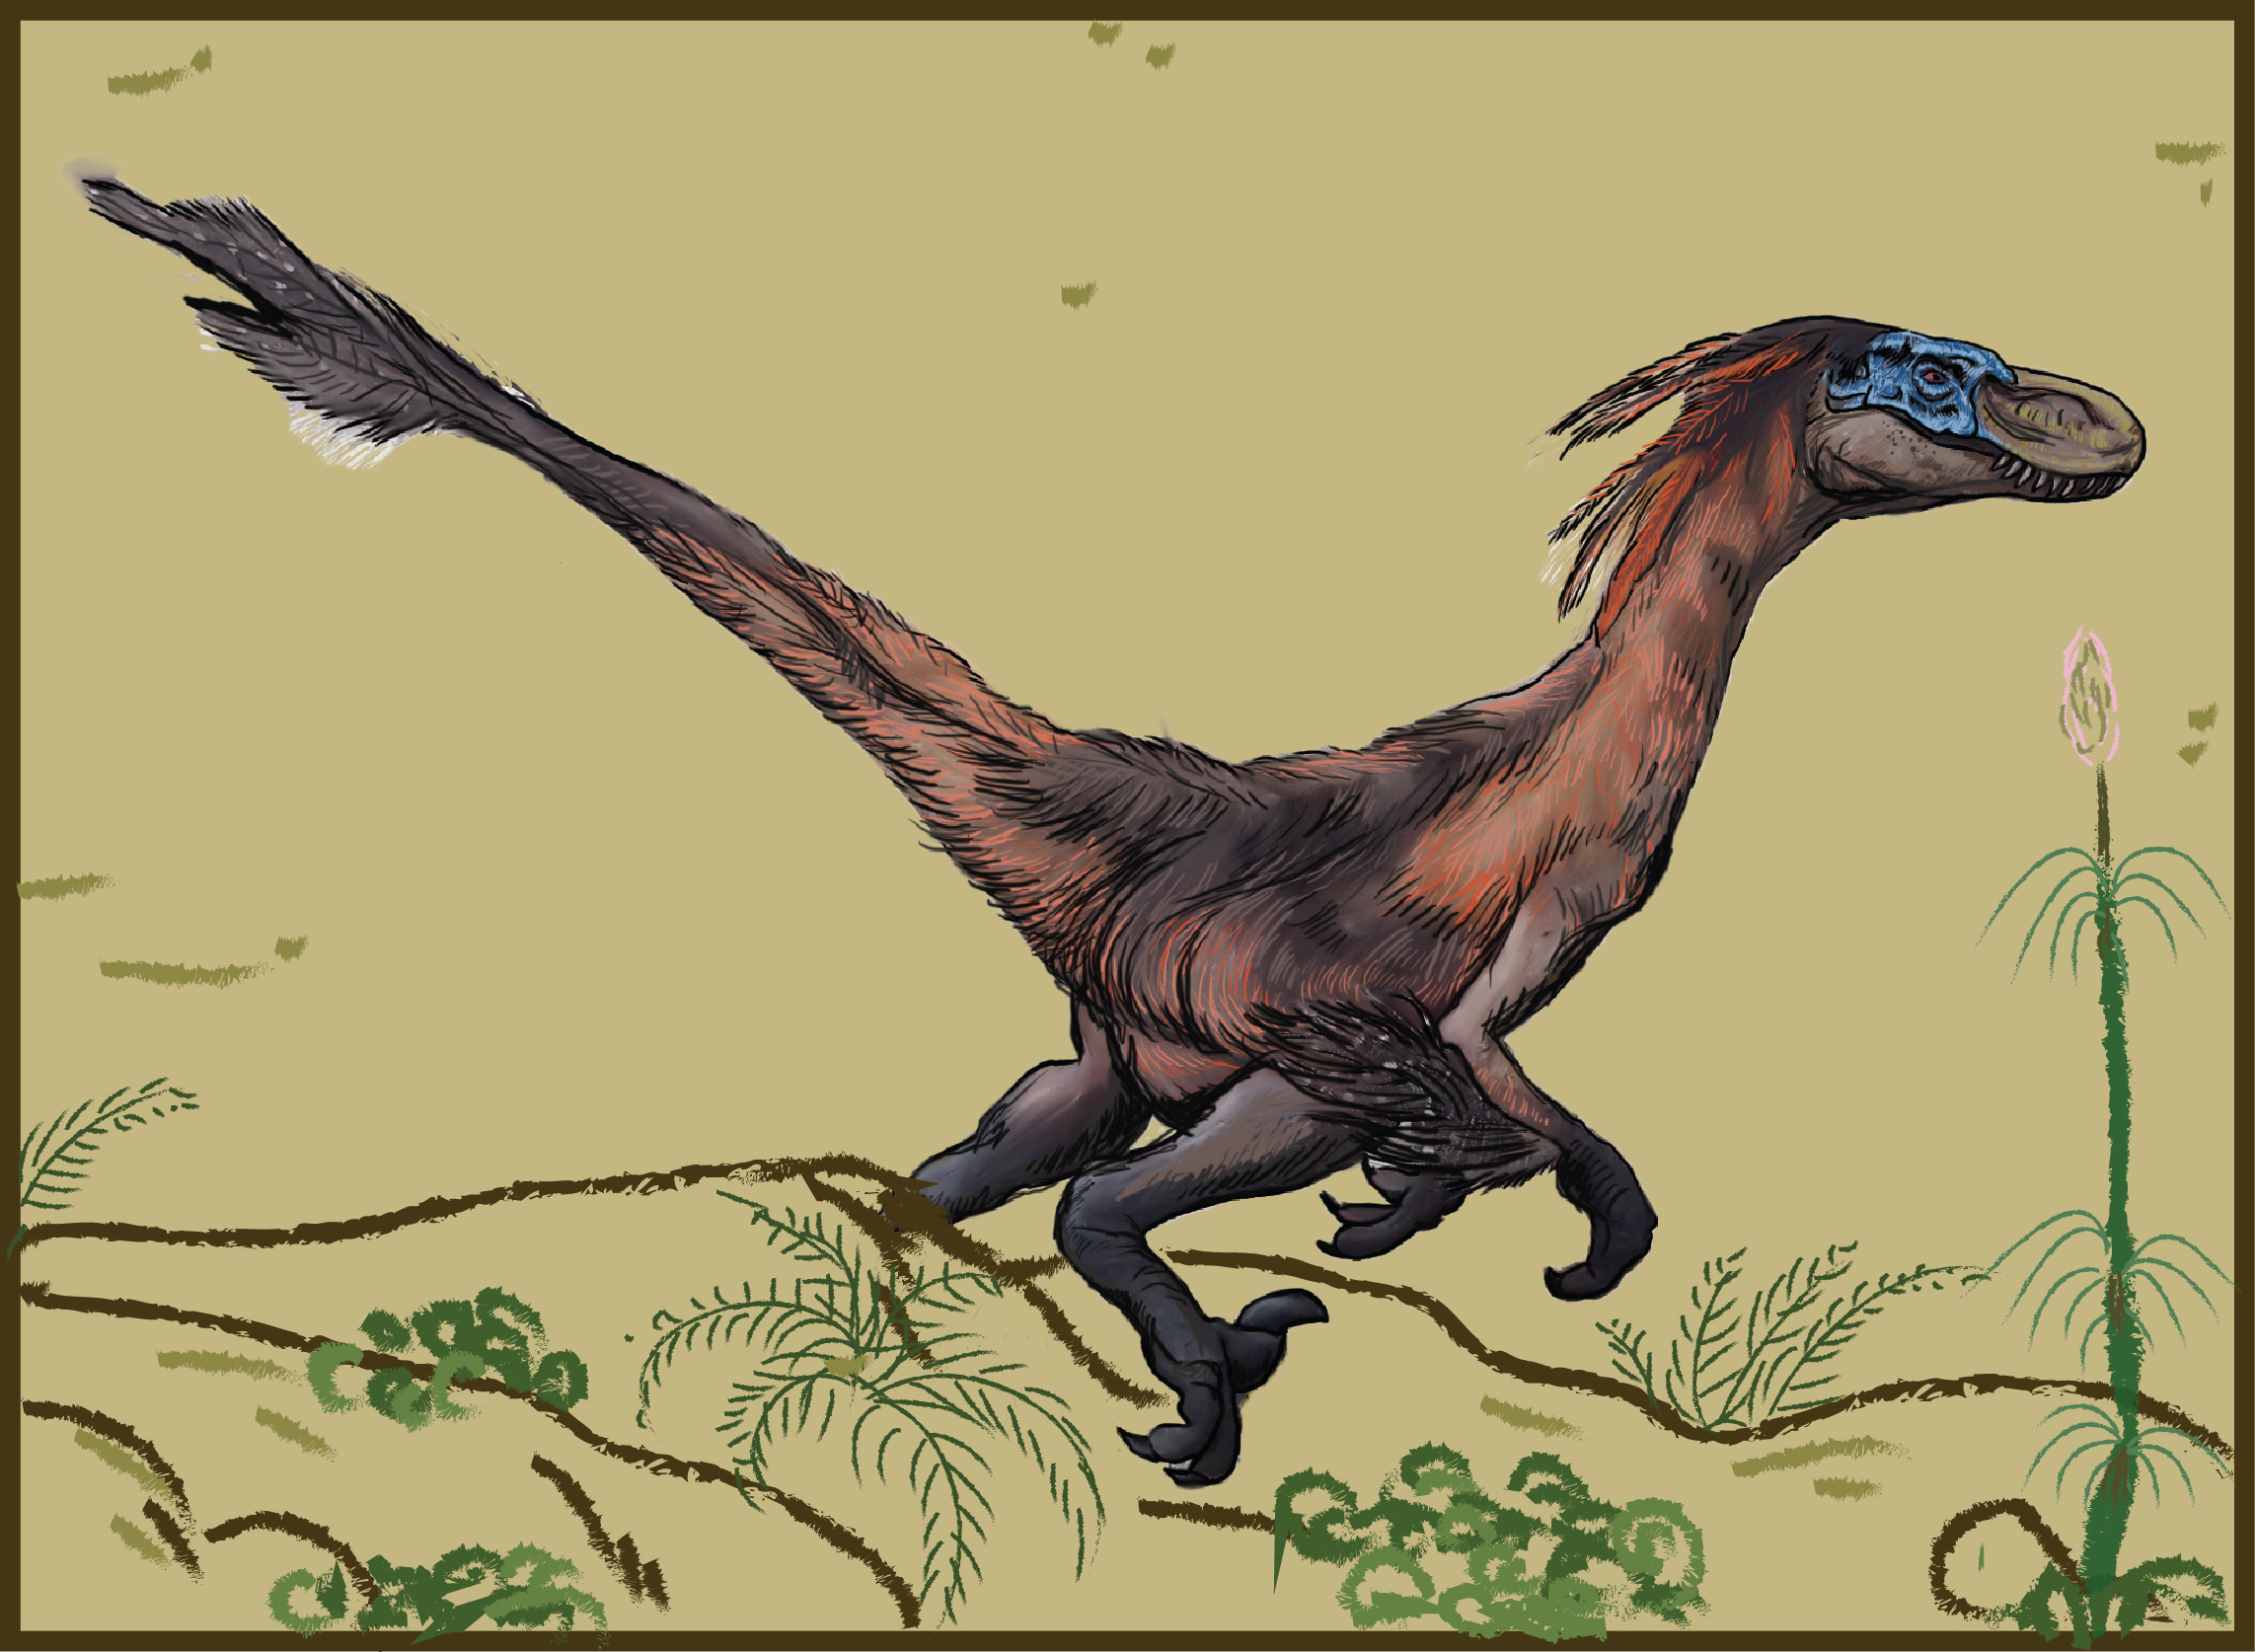 A more accurate depiction of a velociraptor according to what we know today. Credit: Ita Mehrotra